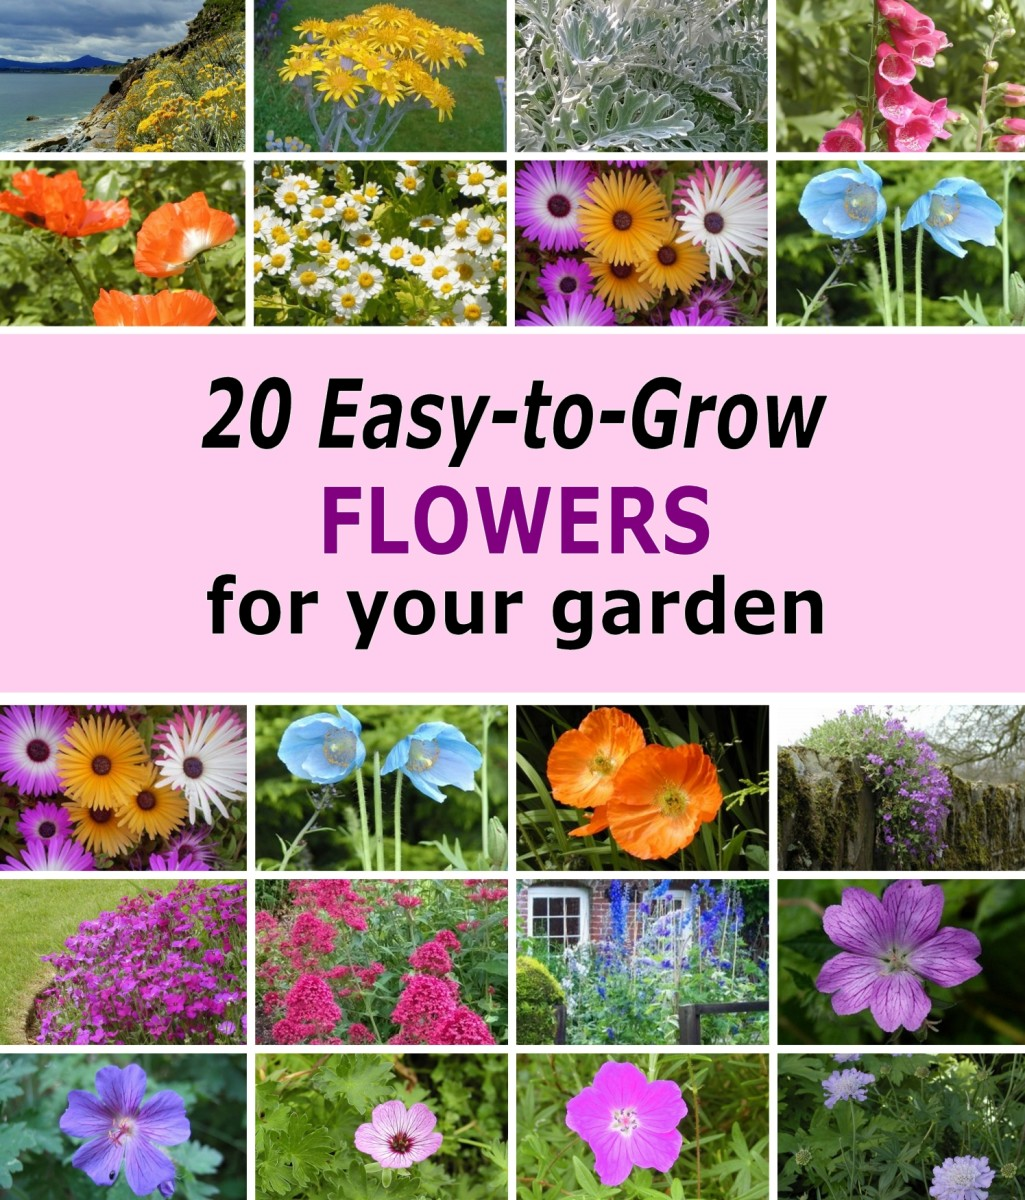 20 Easy-to-Grow Flowers for Garden Planters and Flower Beds!